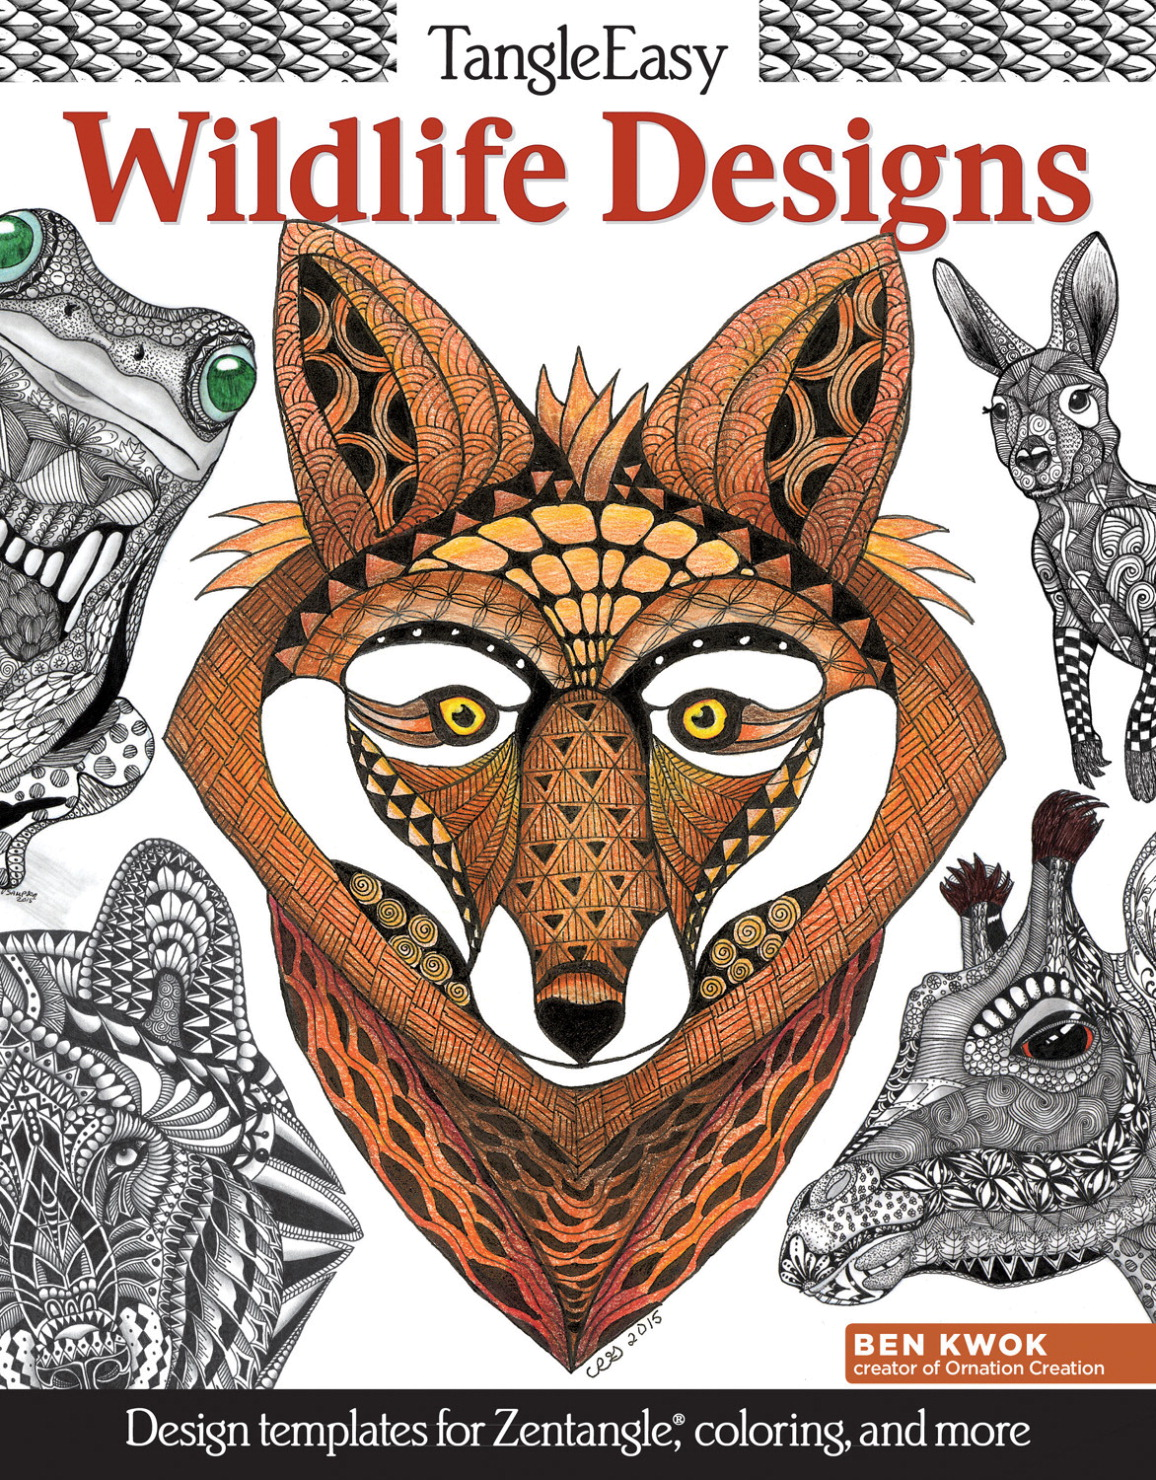 Design Originals, TangleEasy Book, Wildlife Designs